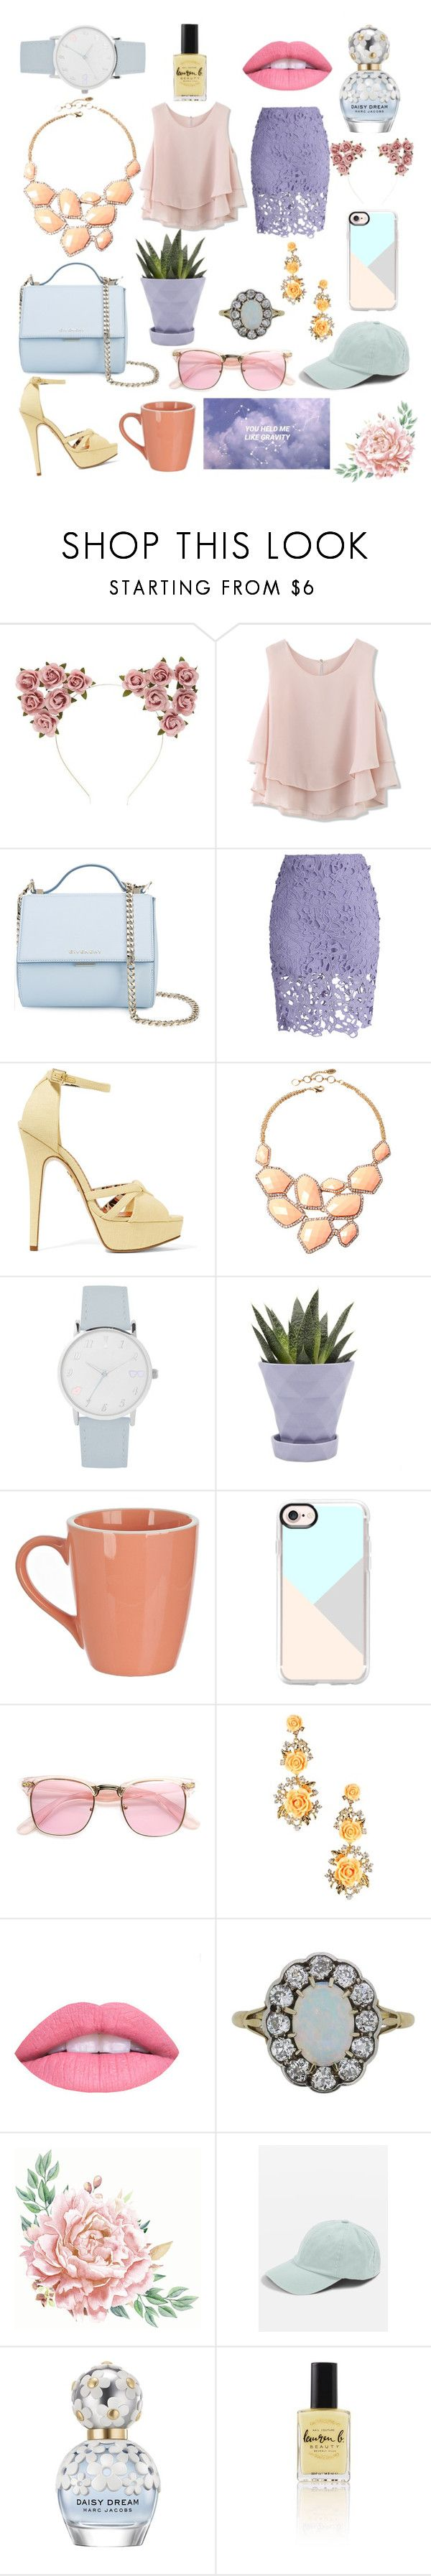 """Pastels"" by gwennie03 ❤ liked on Polyvore featuring Forever 21, Chicwish, Givenchy, Charlotte Olympia, Amrita Singh, A.X.N.Y., Chive, Casetify, ZeroUV and L.A. Girl"